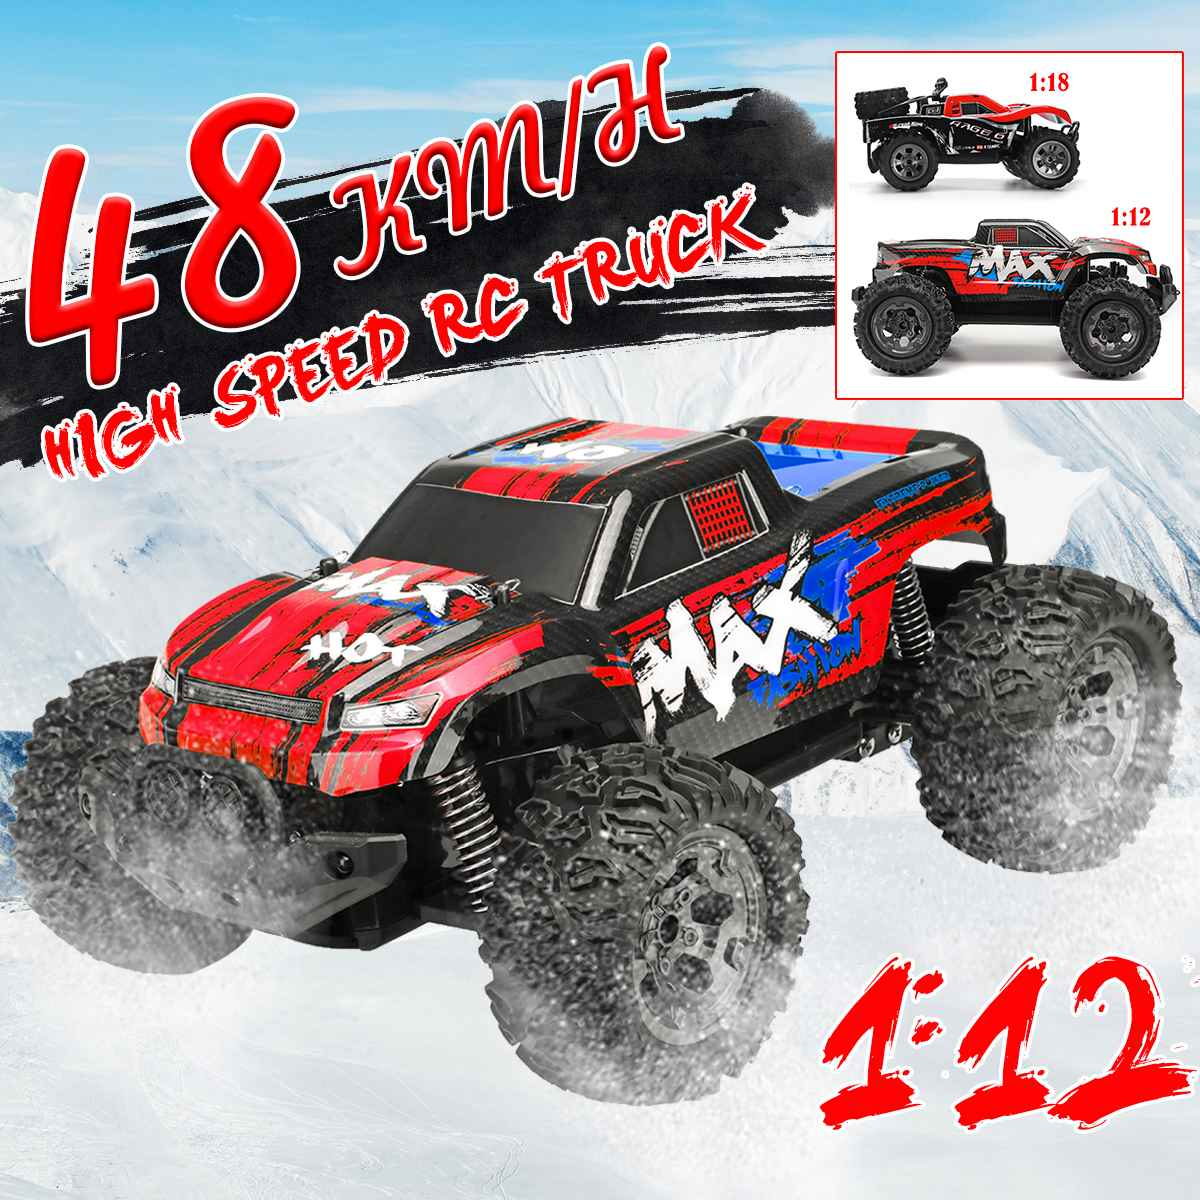 1/12 Remote Control Car High Speed RC Electric Monster Truck Car Remote Control Model Off-Road Vehicle  For Boys Kids 48km/H1/12 Remote Control Car High Speed RC Electric Monster Truck Car Remote Control Model Off-Road Vehicle  For Boys Kids 48km/H